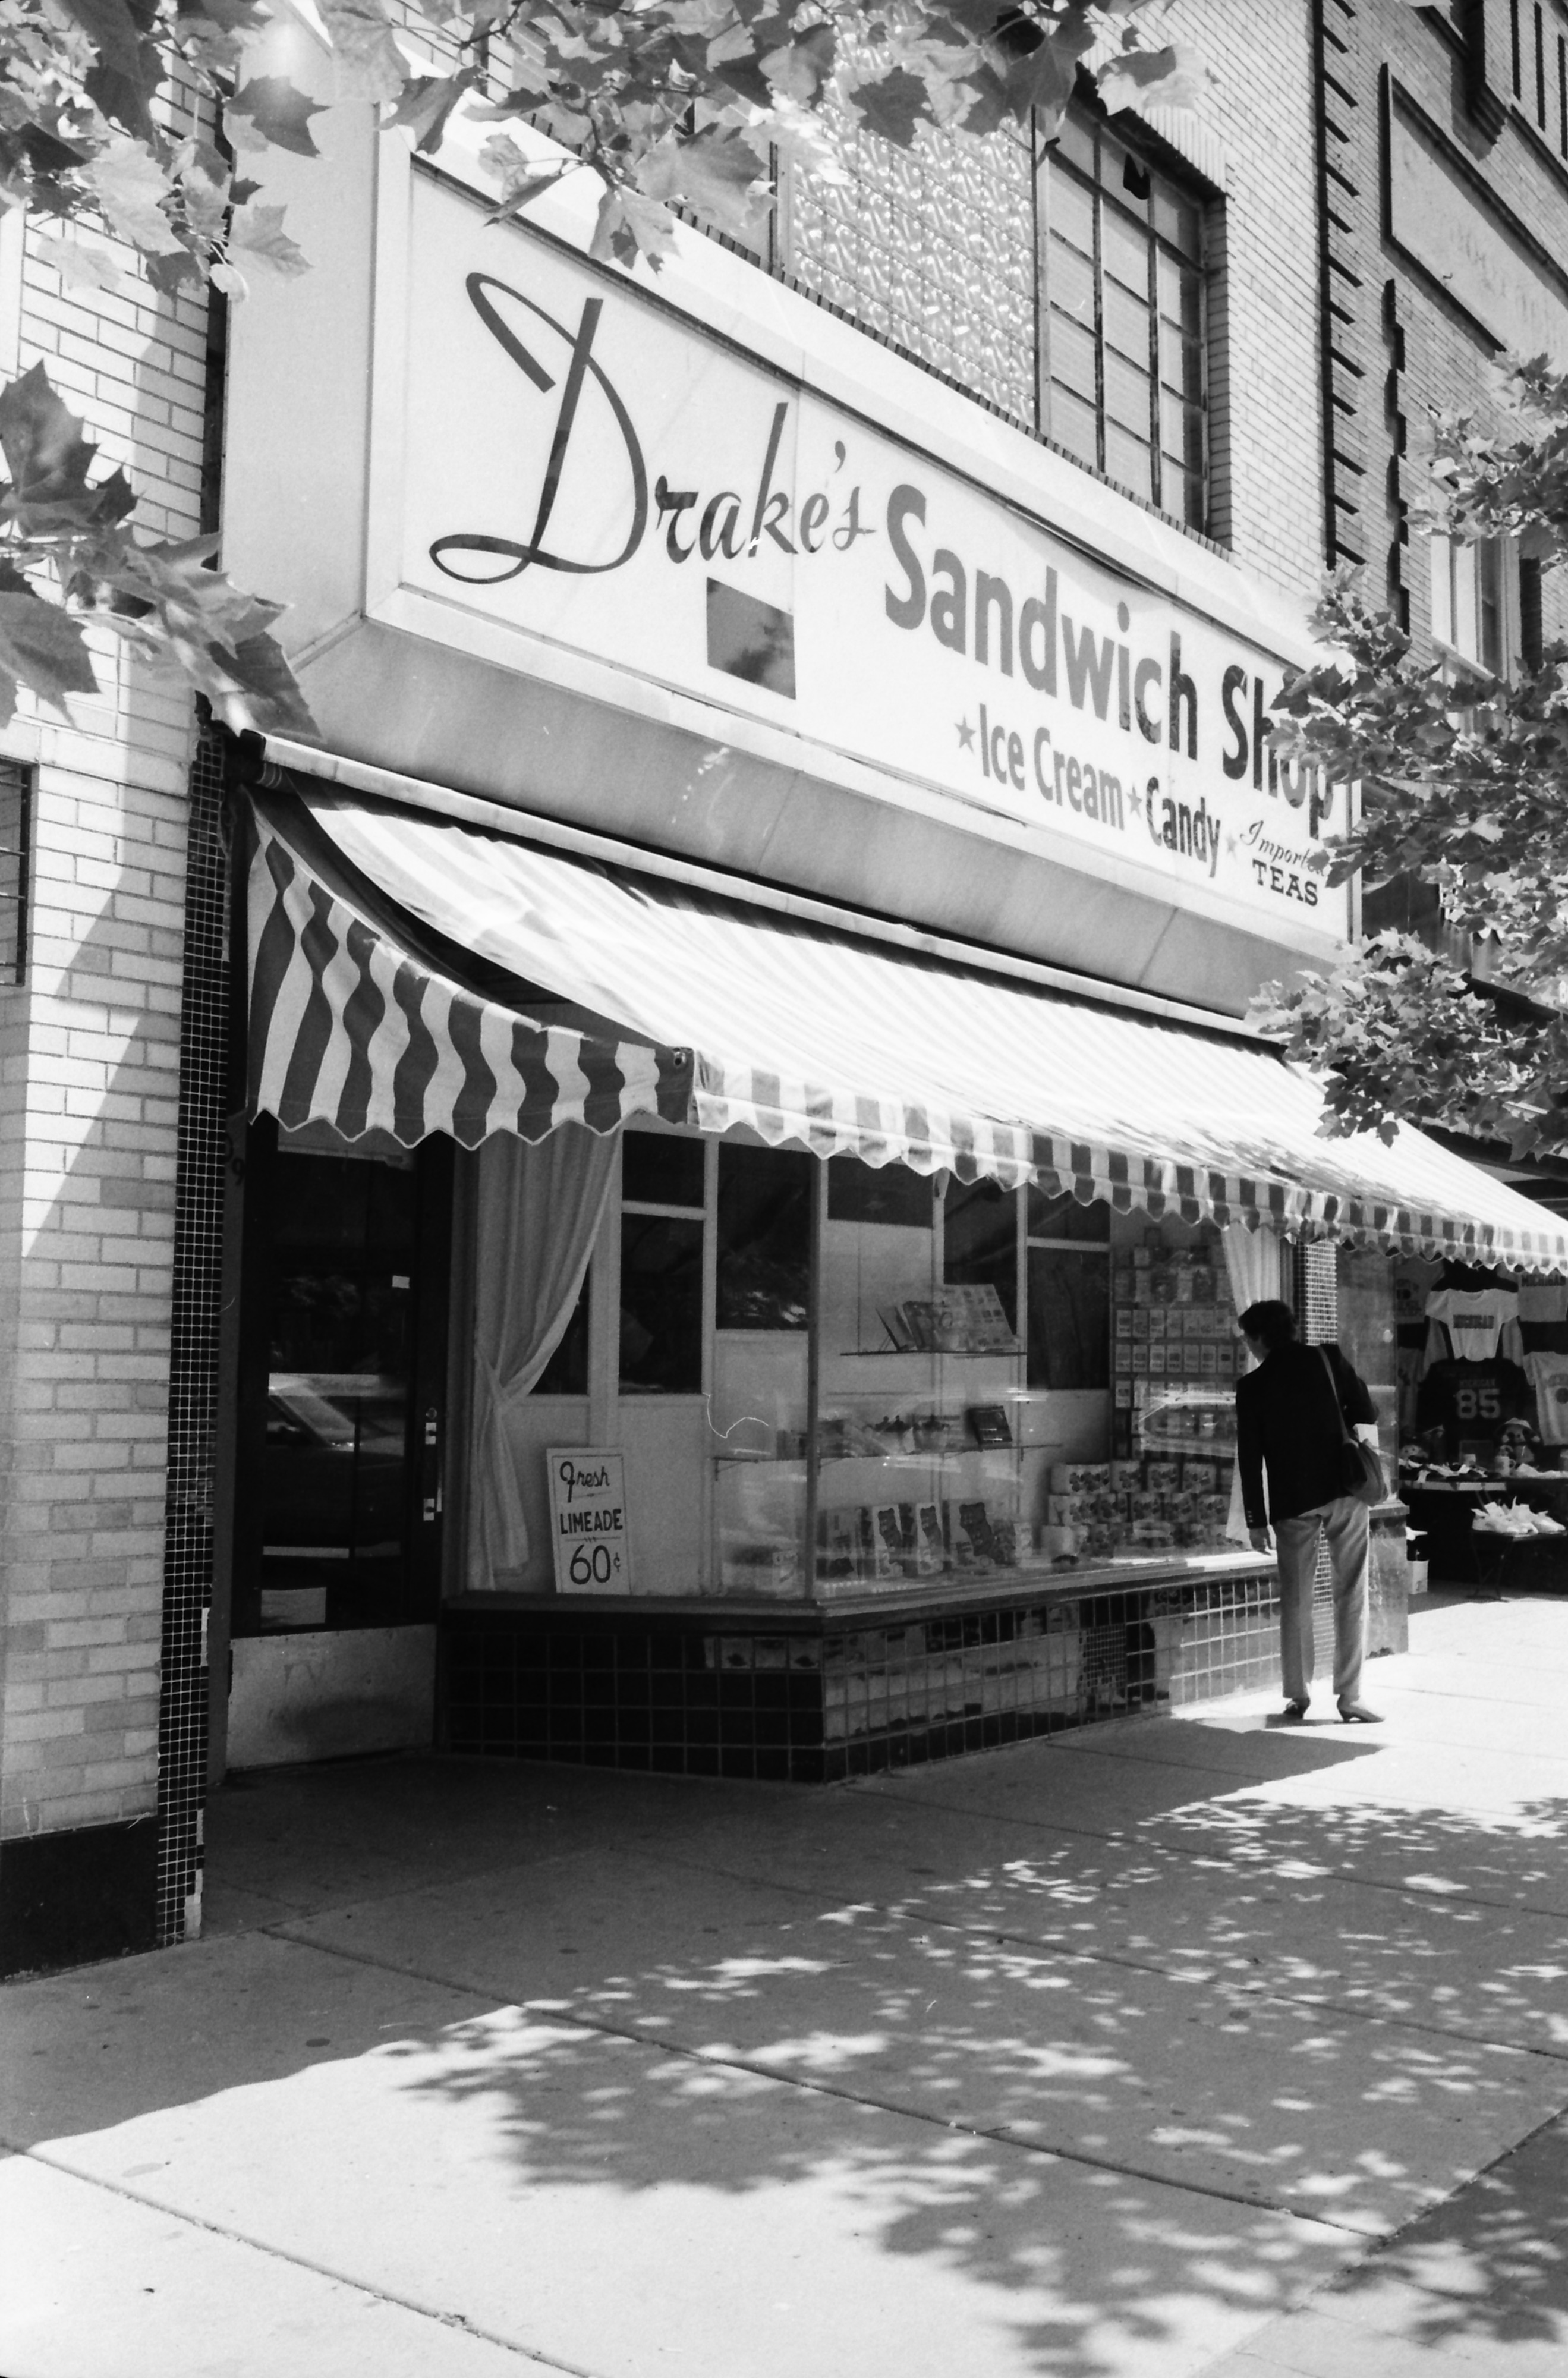 Drake's Sandwich Shop, September 1965 image